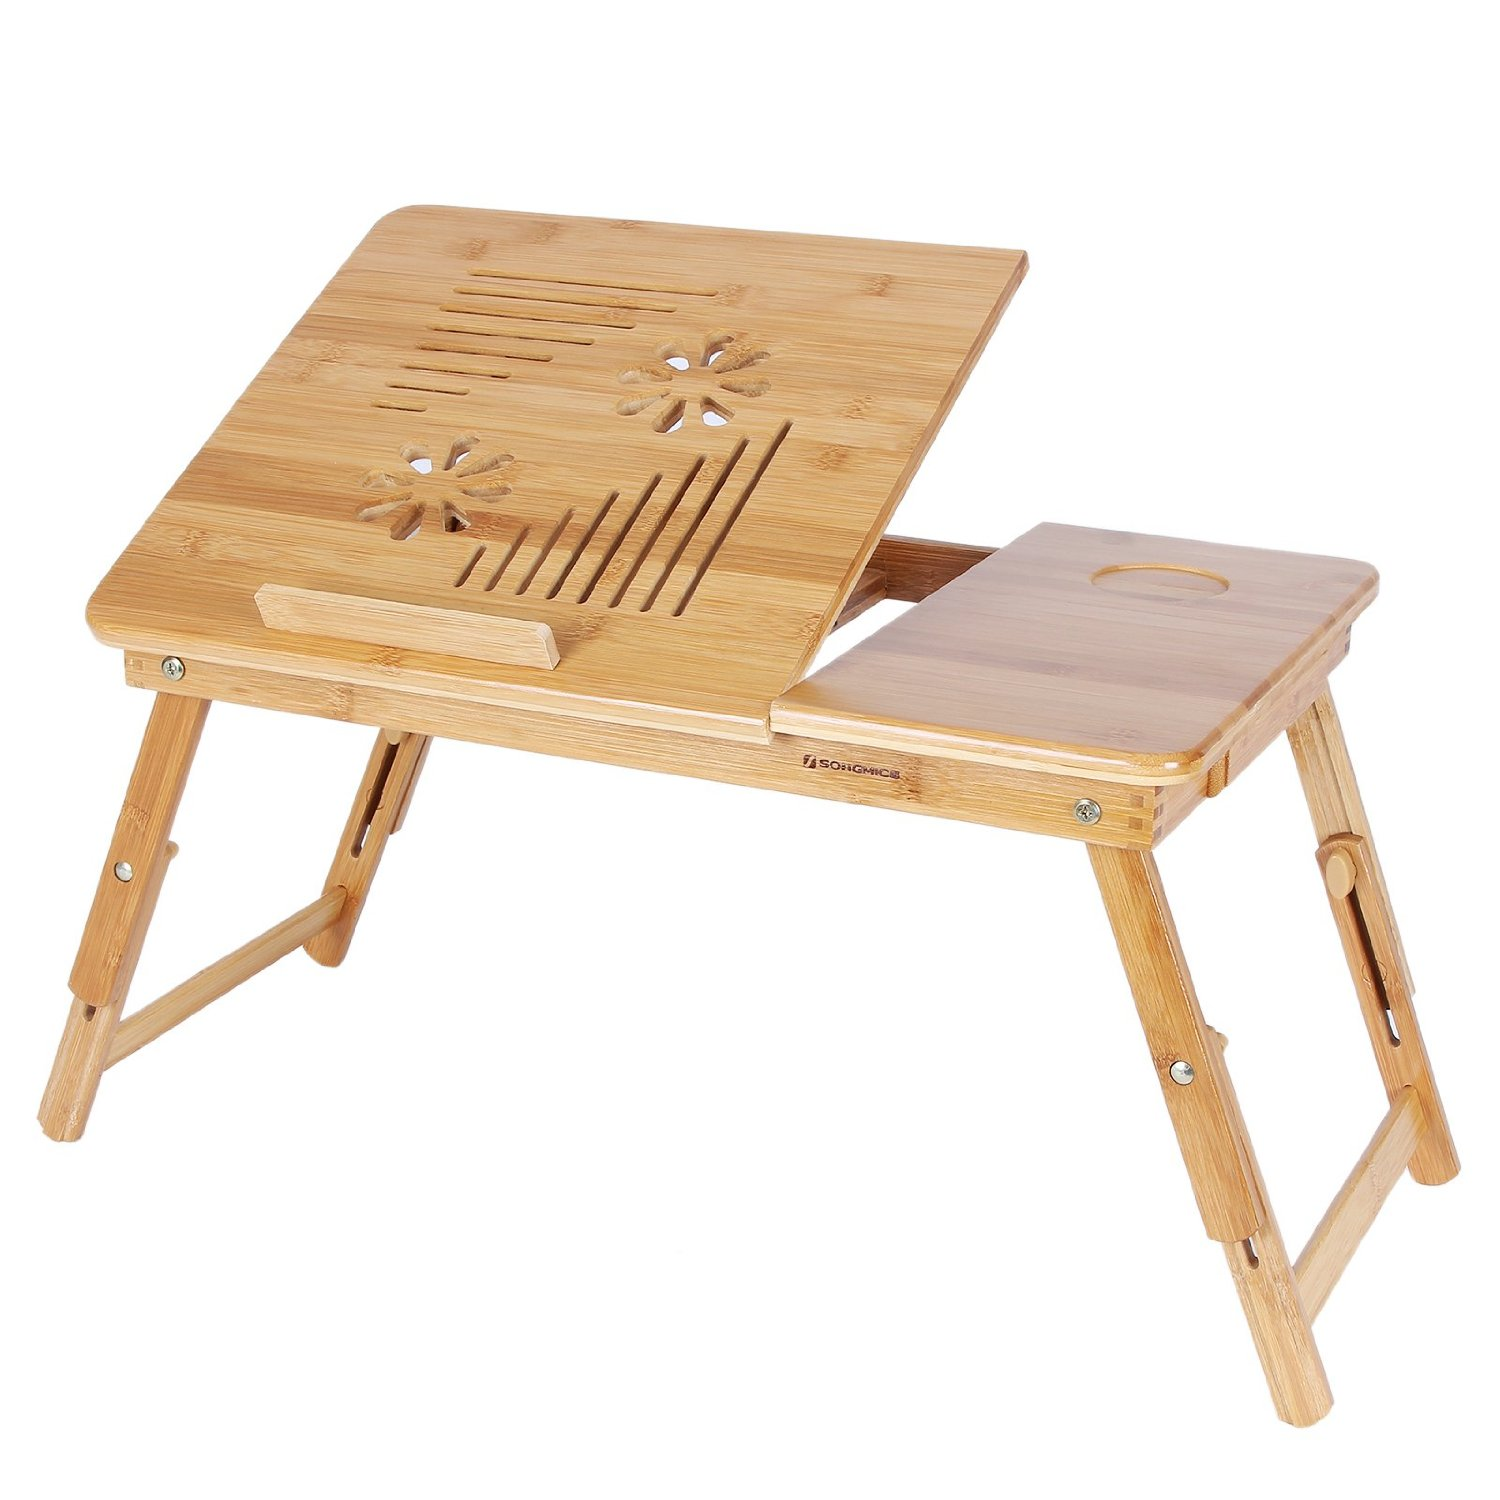 SONGMICS 100% Bamboo Adjustable Laptop Desk/Table Breakfast Serving Bed Tray w' Tilting Top Drawer ULLD002